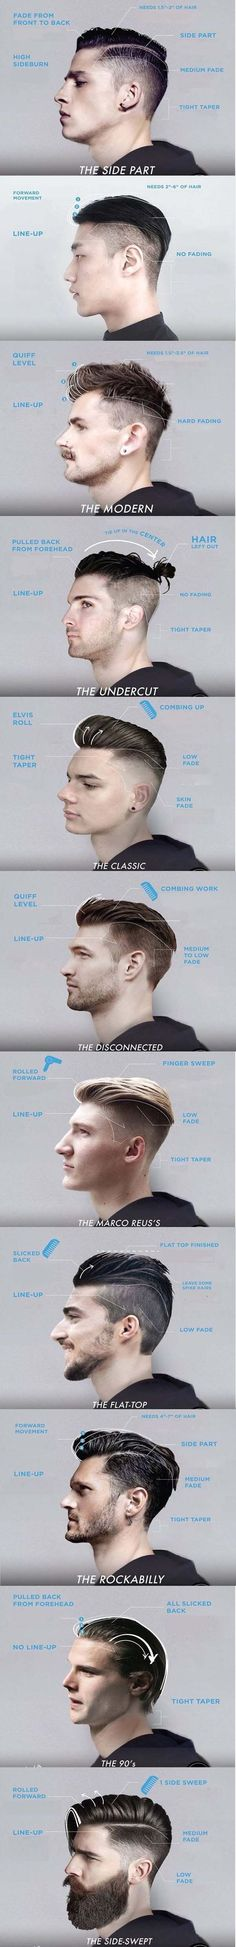 Men's Hairstyles 2017 Dashing #menshairstyles2017